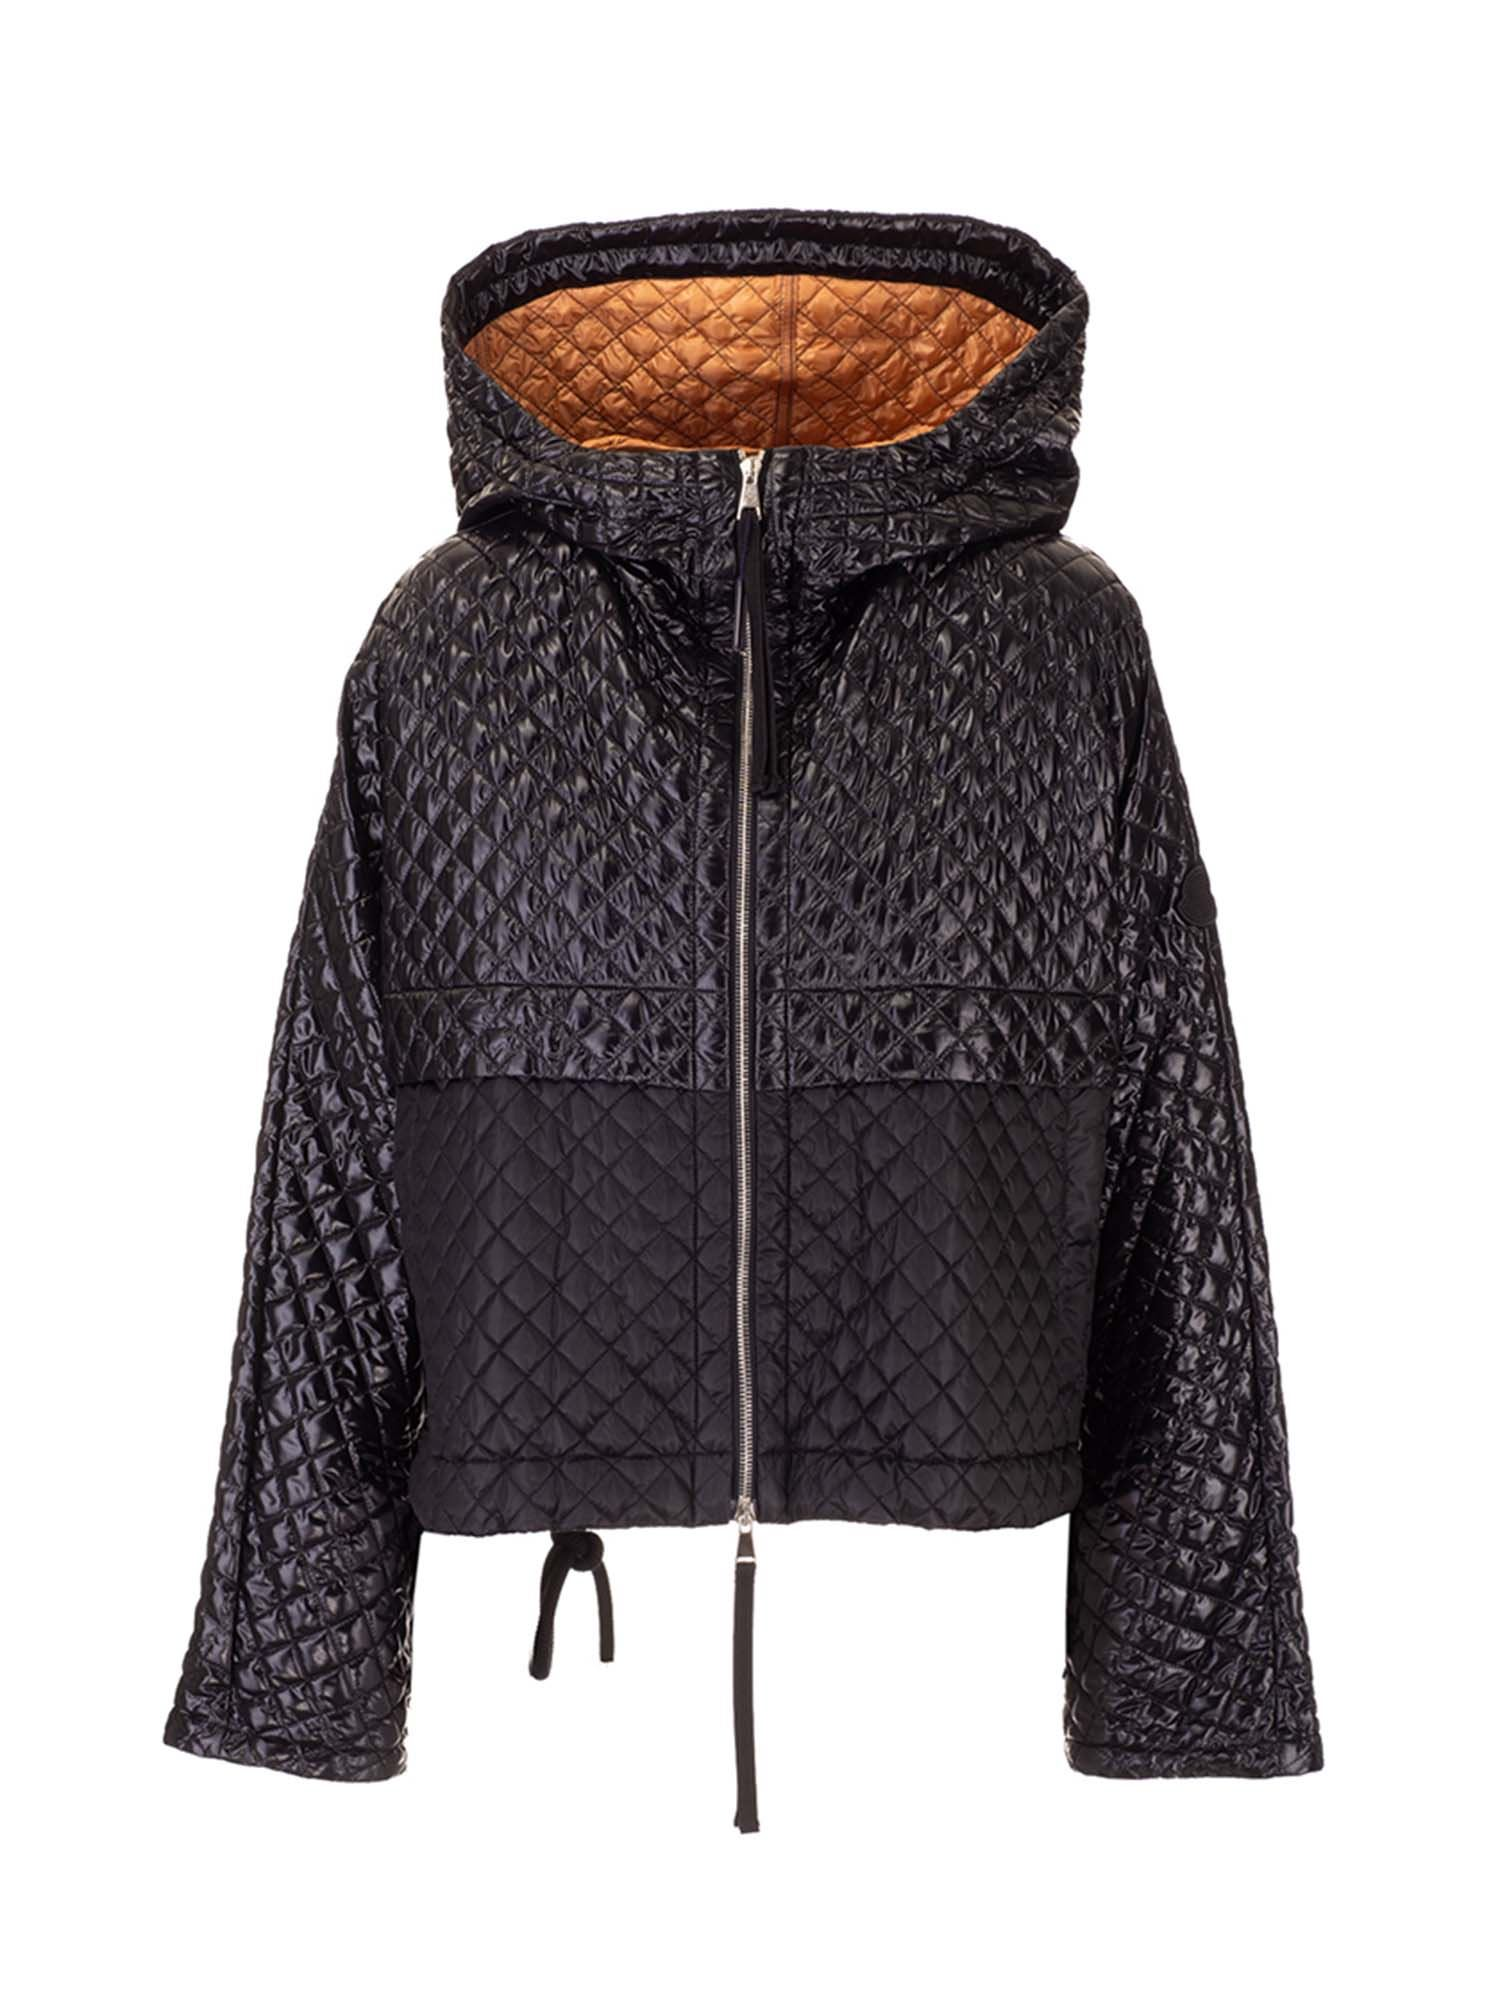 Moncler Genius HOODED JACKET IN BLACK